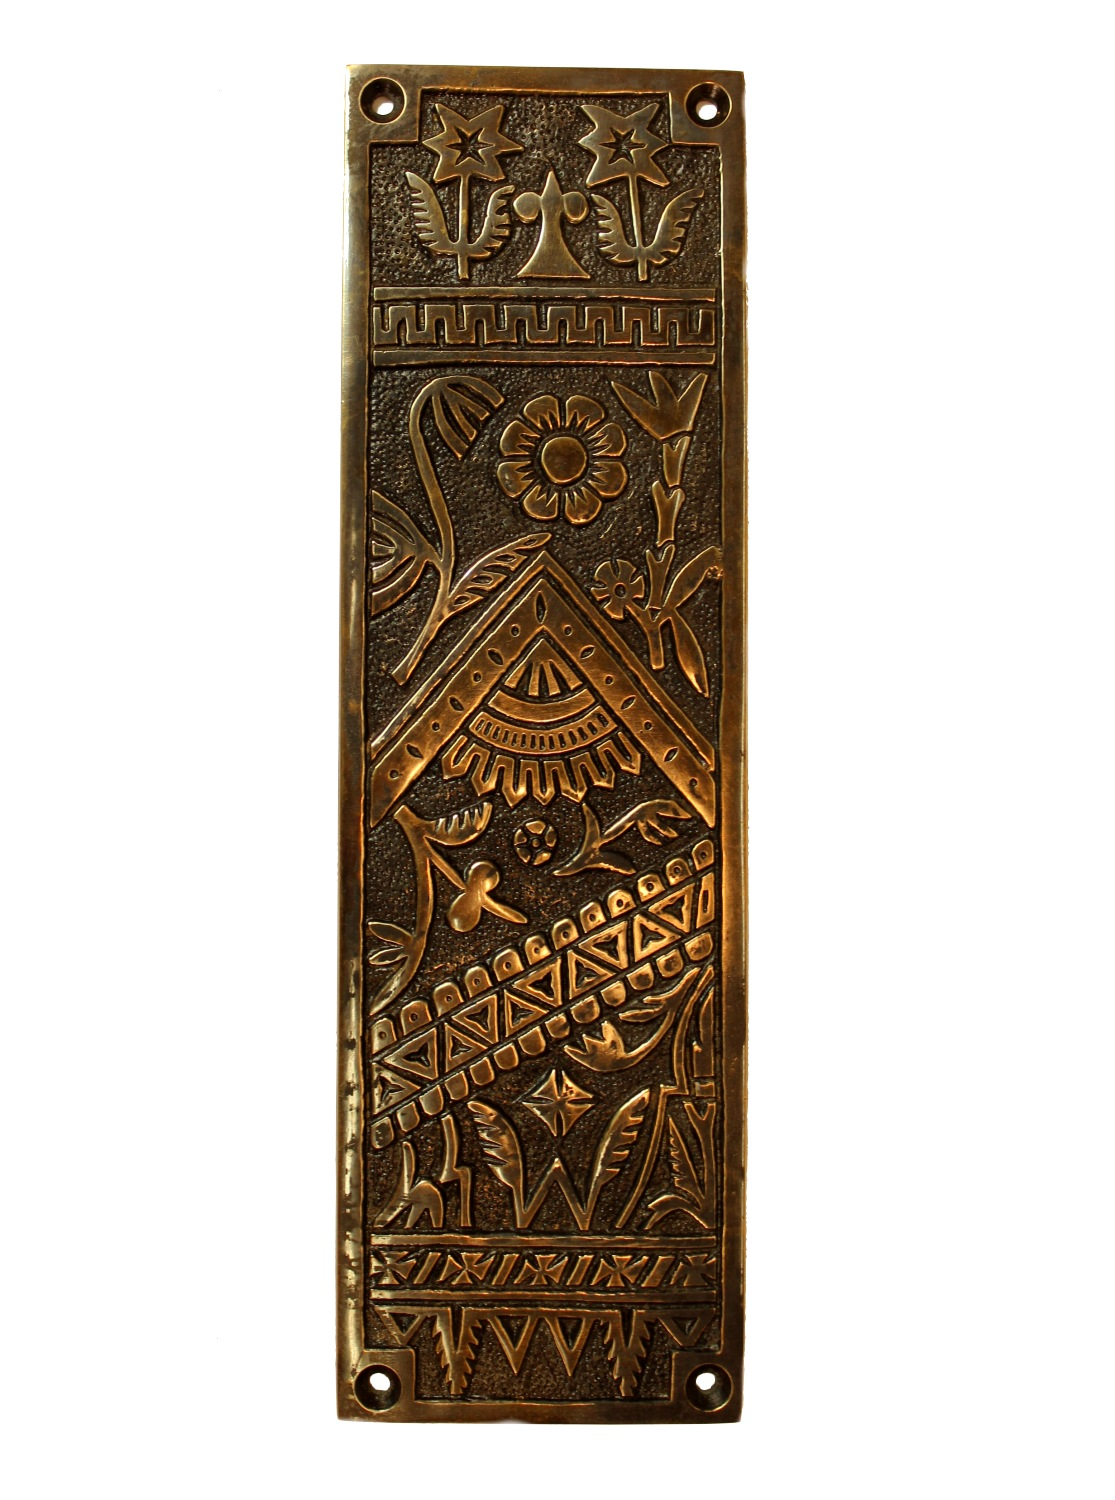 Antique Push Plate Door Hardware Victorian Design Vintage Restoration  Replica Hardware Bronze Finish - Antique Push Plate Door Hardware Victorian Design Vintage